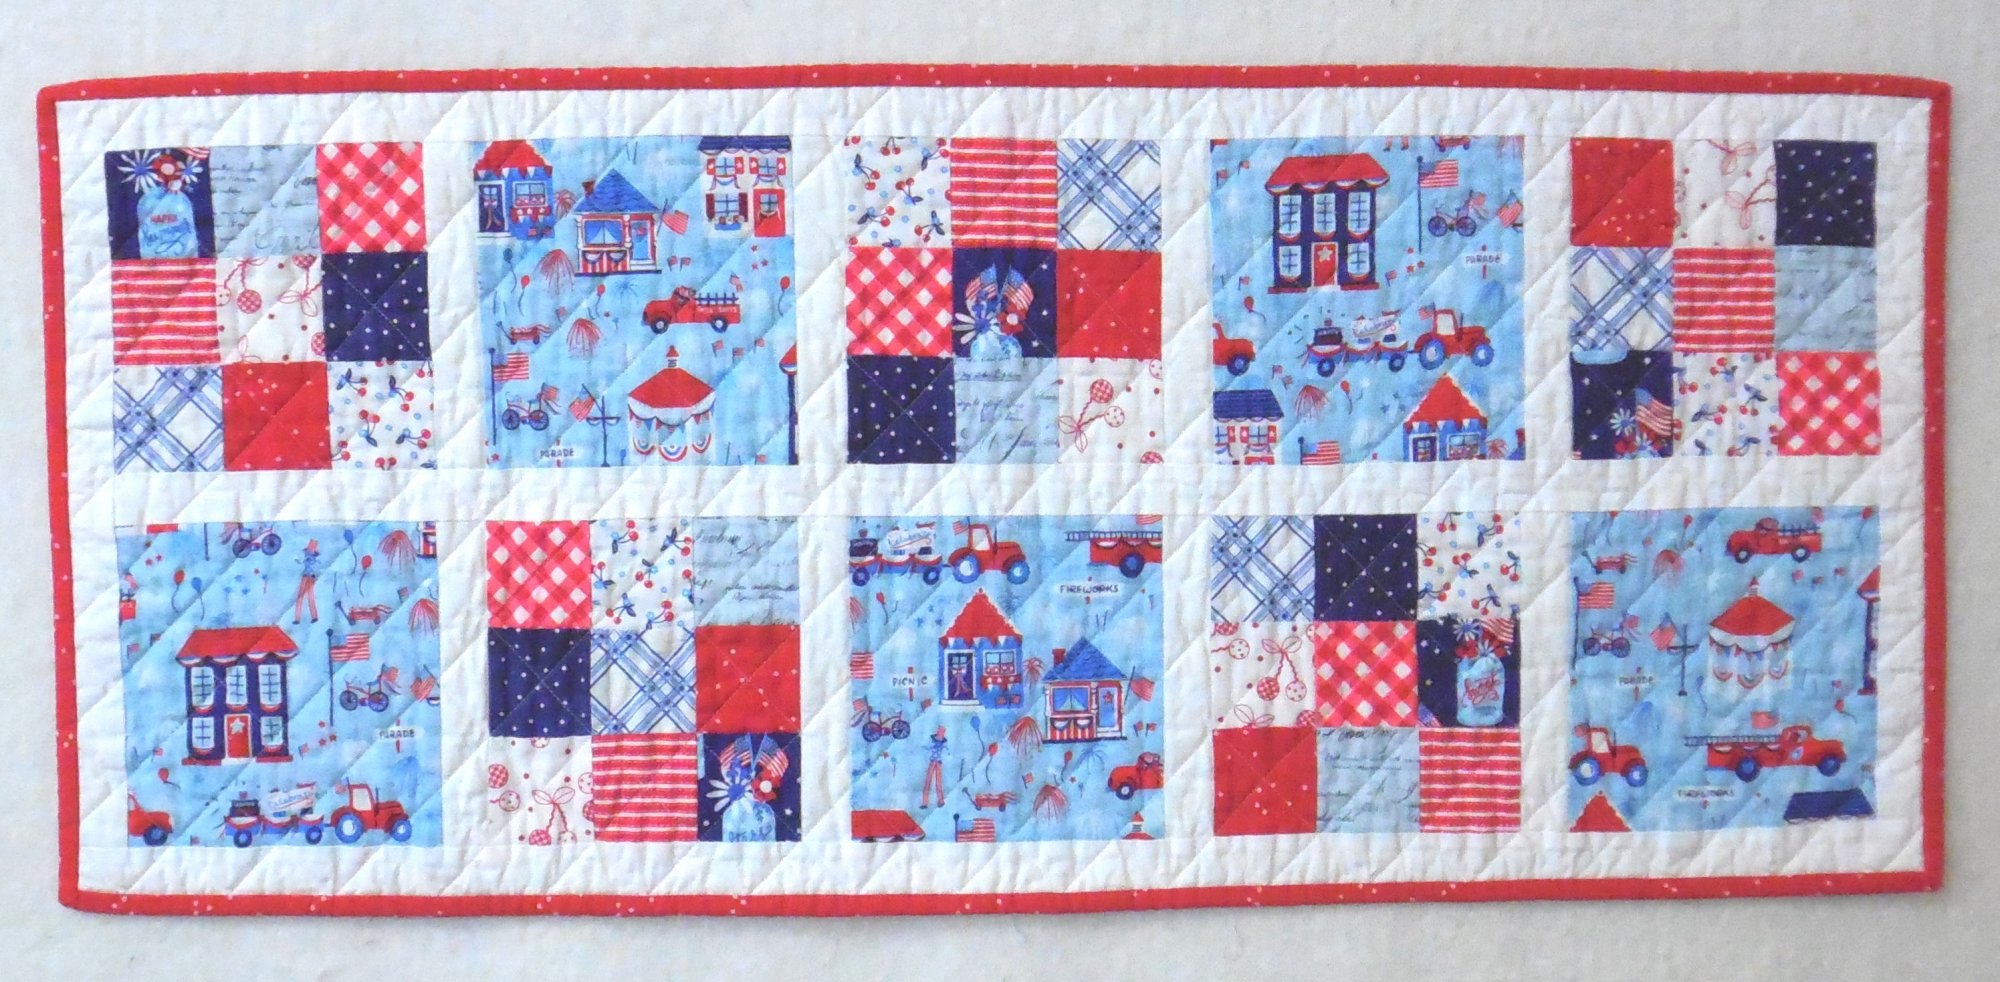 Patriotic Parade Finished Quilt Table runner 15 1/2 x 36 1/2